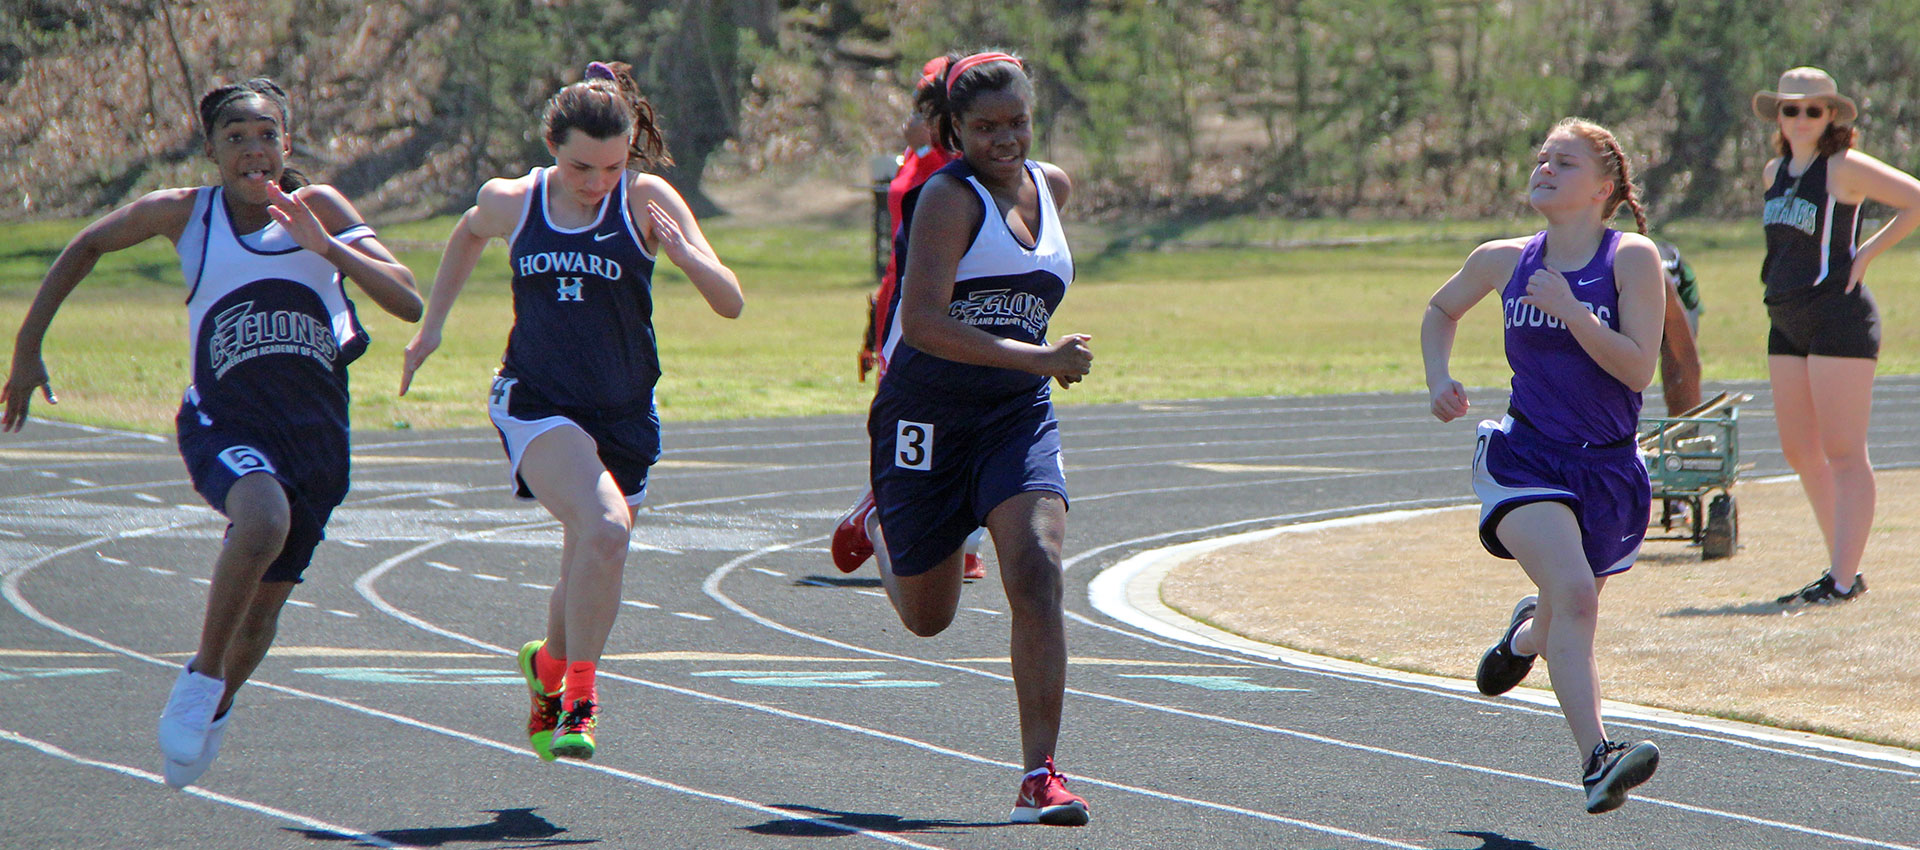 Cumberland Academy Track Team - Athletics Department